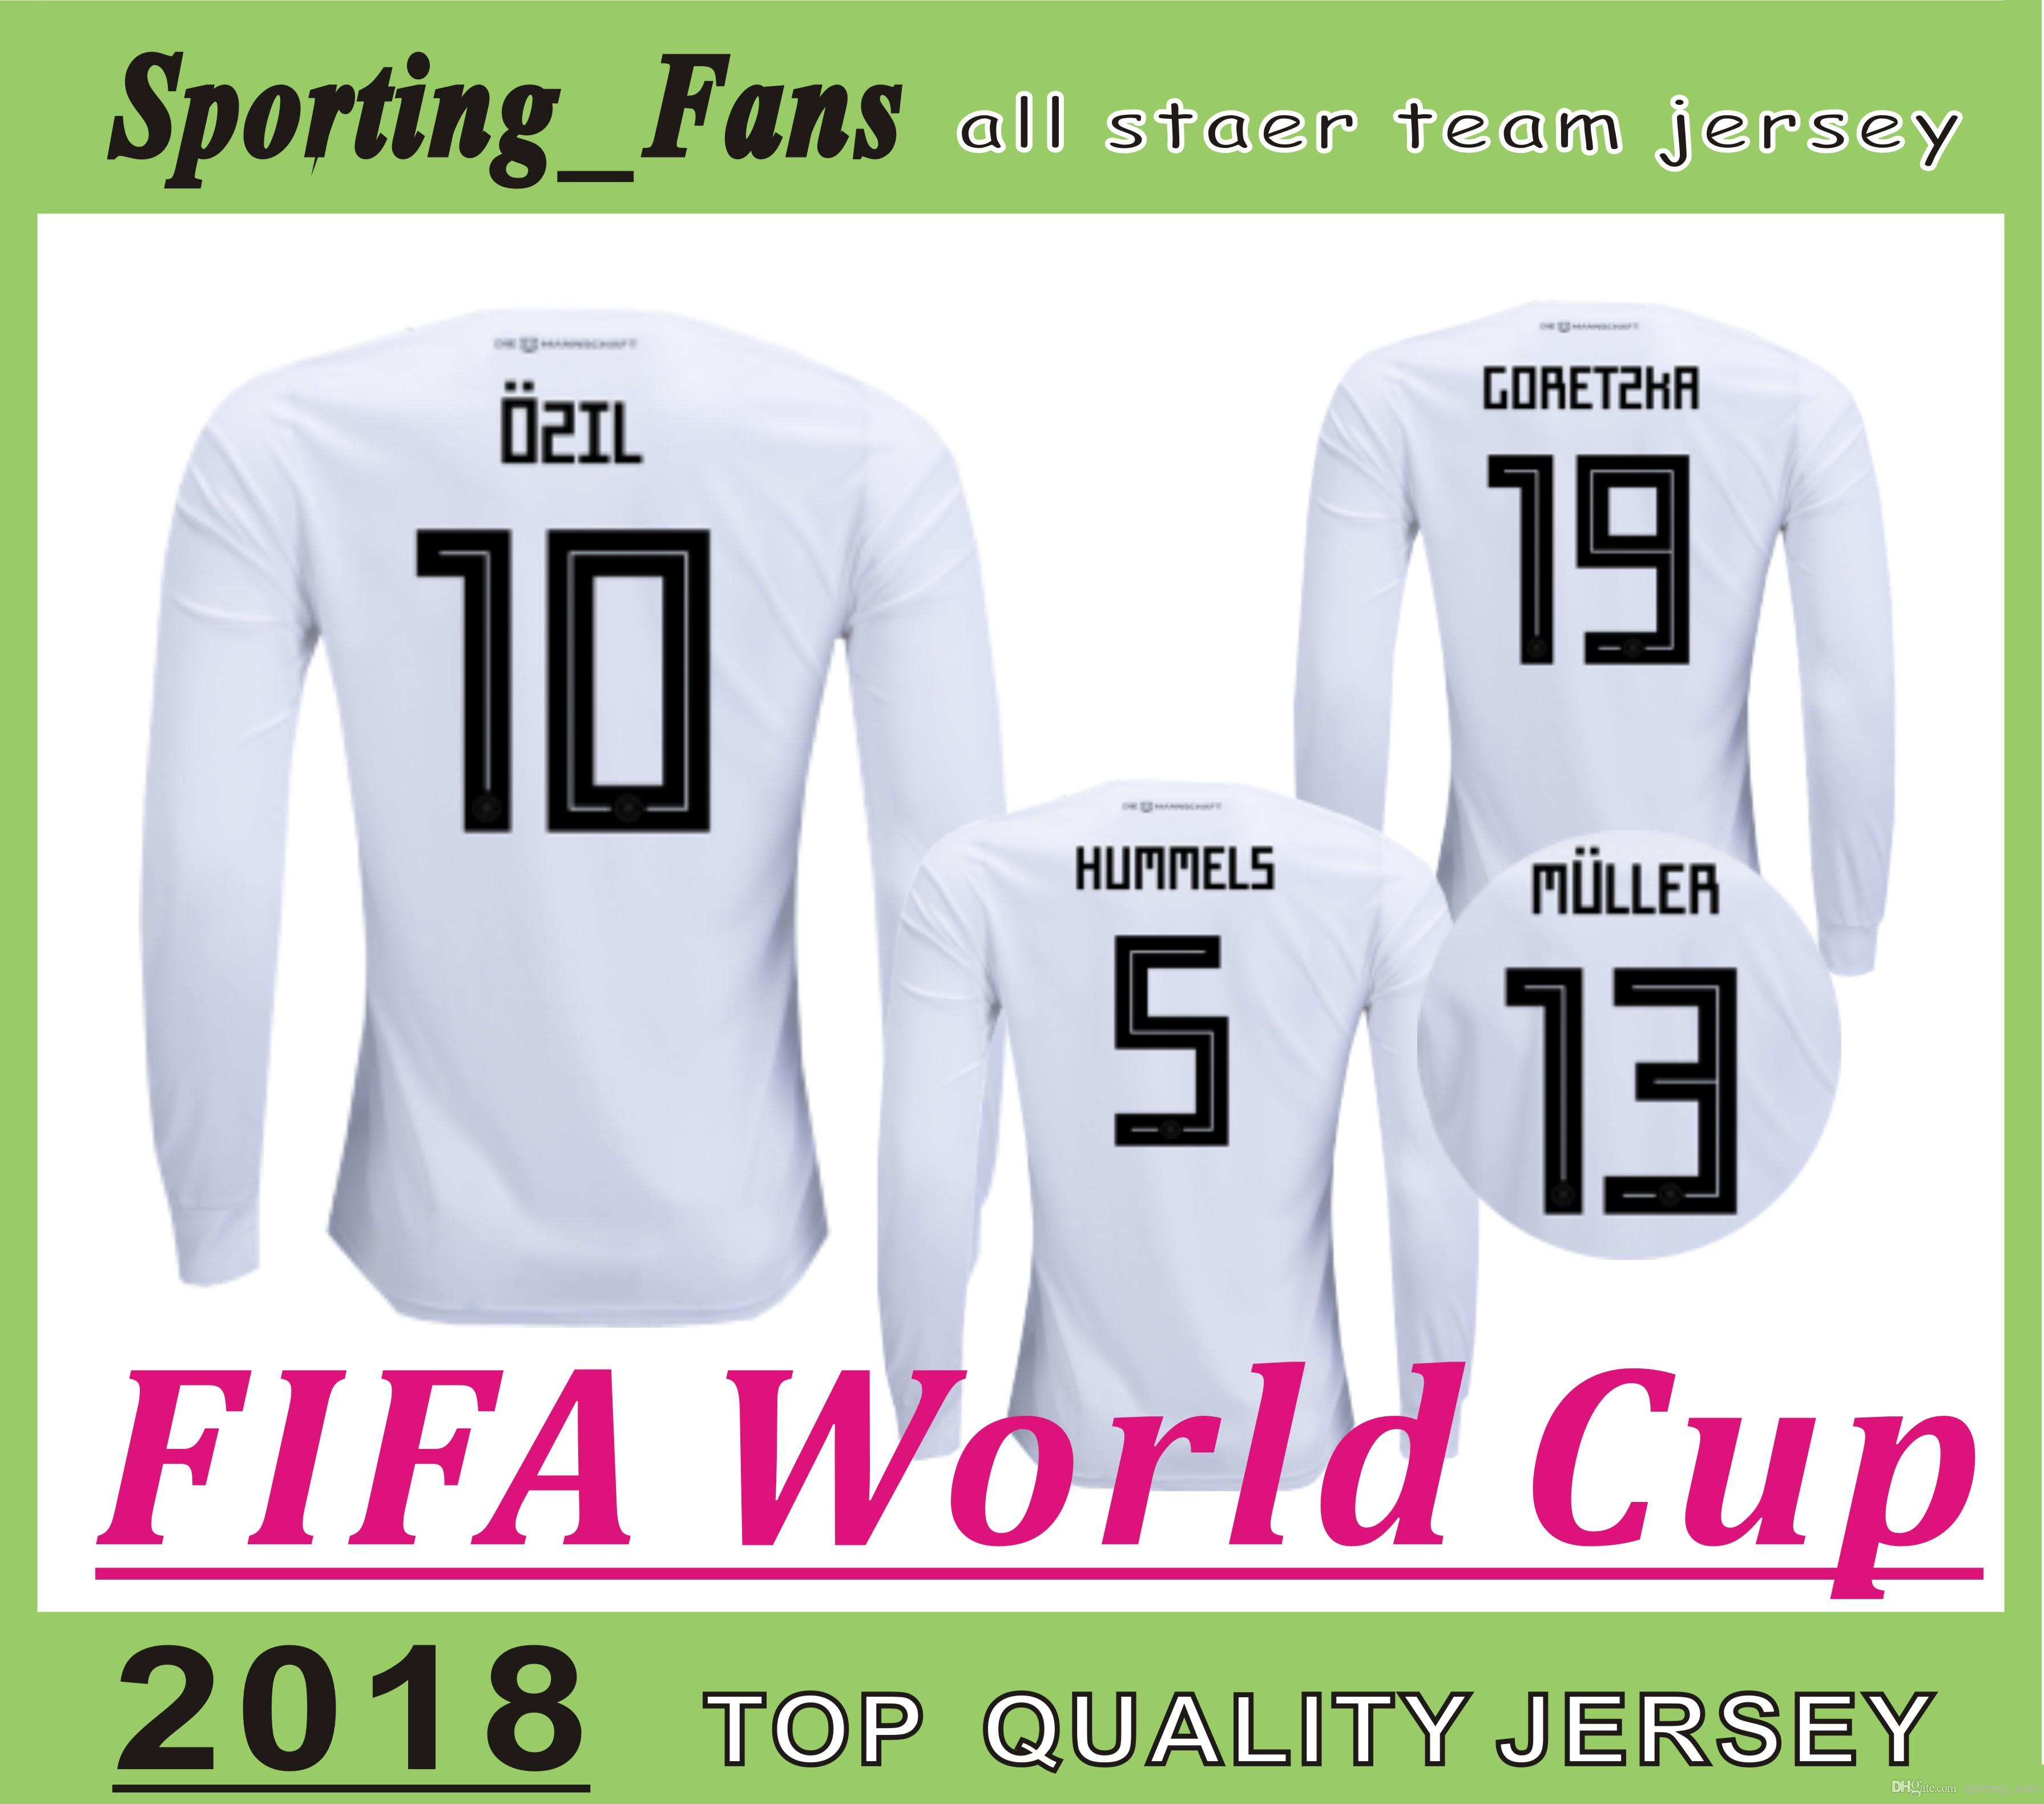 0798909ae9f 2019 2018 World Cup Jerseys Long Sleeve 2014 World Cup Champions With Patch  Mesut Ozil Mats Hummels MULLER Julian Draxler From Sporting fans